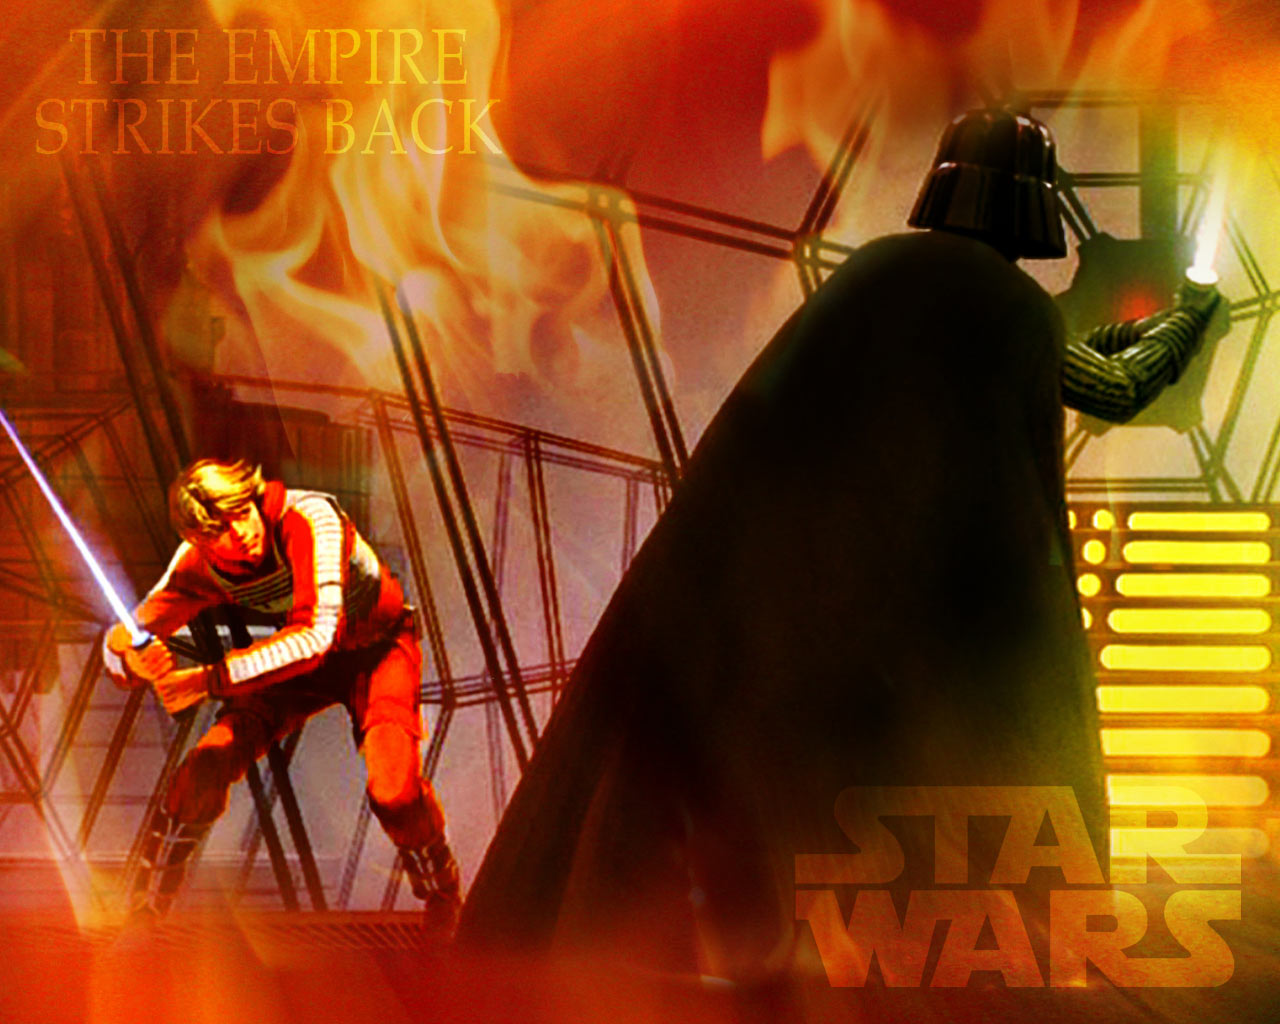 Empire Strikes Back >> StarWars Union | Wallpaper